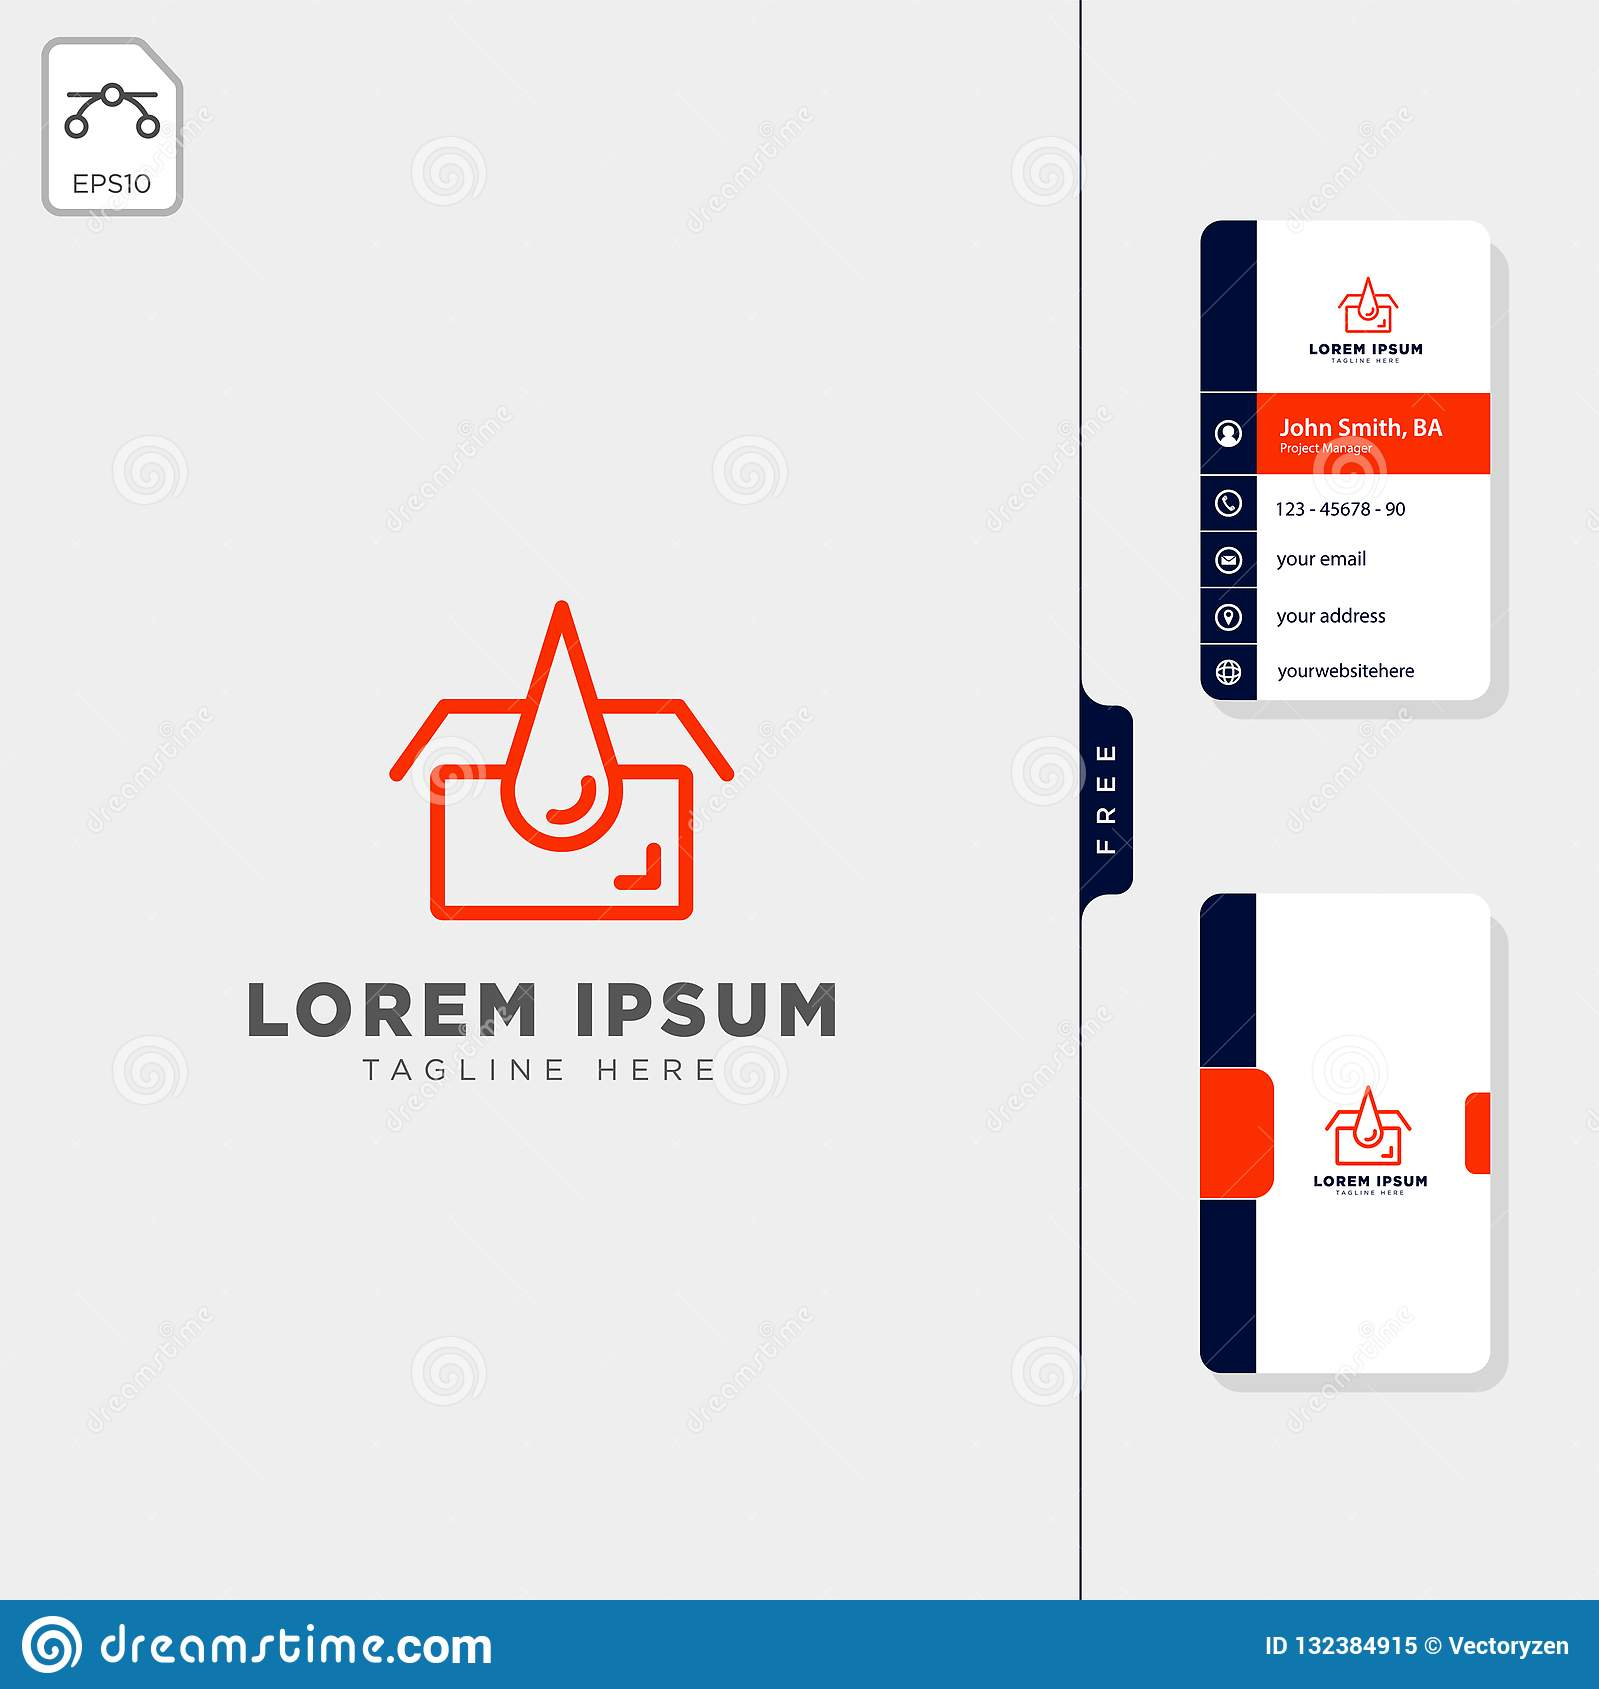 Garage Design Template Garage Oil Services Concept Logo Template Free Business Card